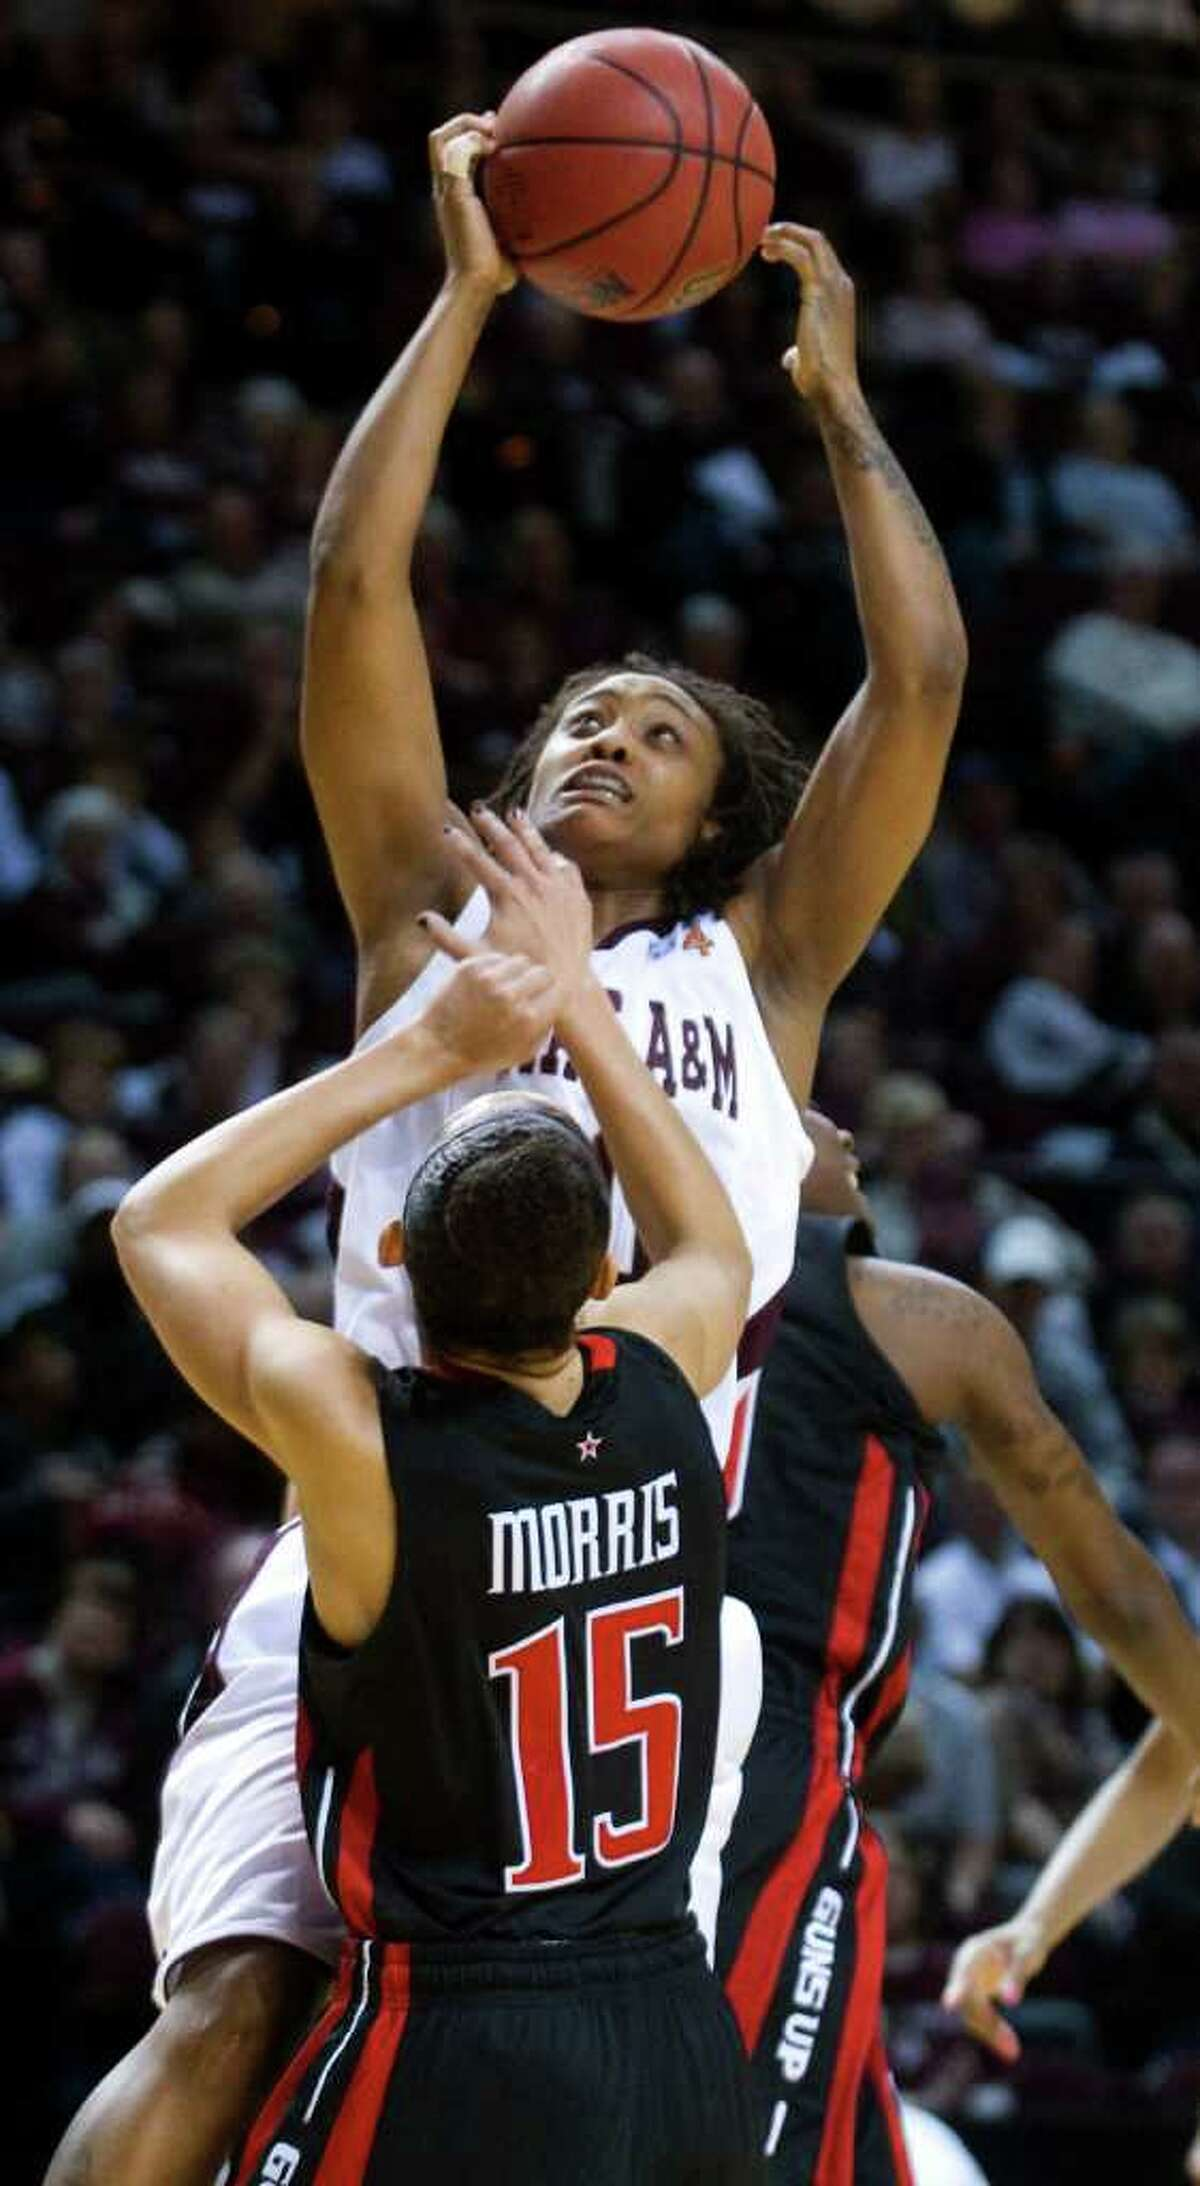 Texas A&M's Tyra White grabs the offensive rebound over Texas Tech's Casey Morris during the first half of an NCAA college basketball game, Saturday, Feb. 25, 2012, in College Station.